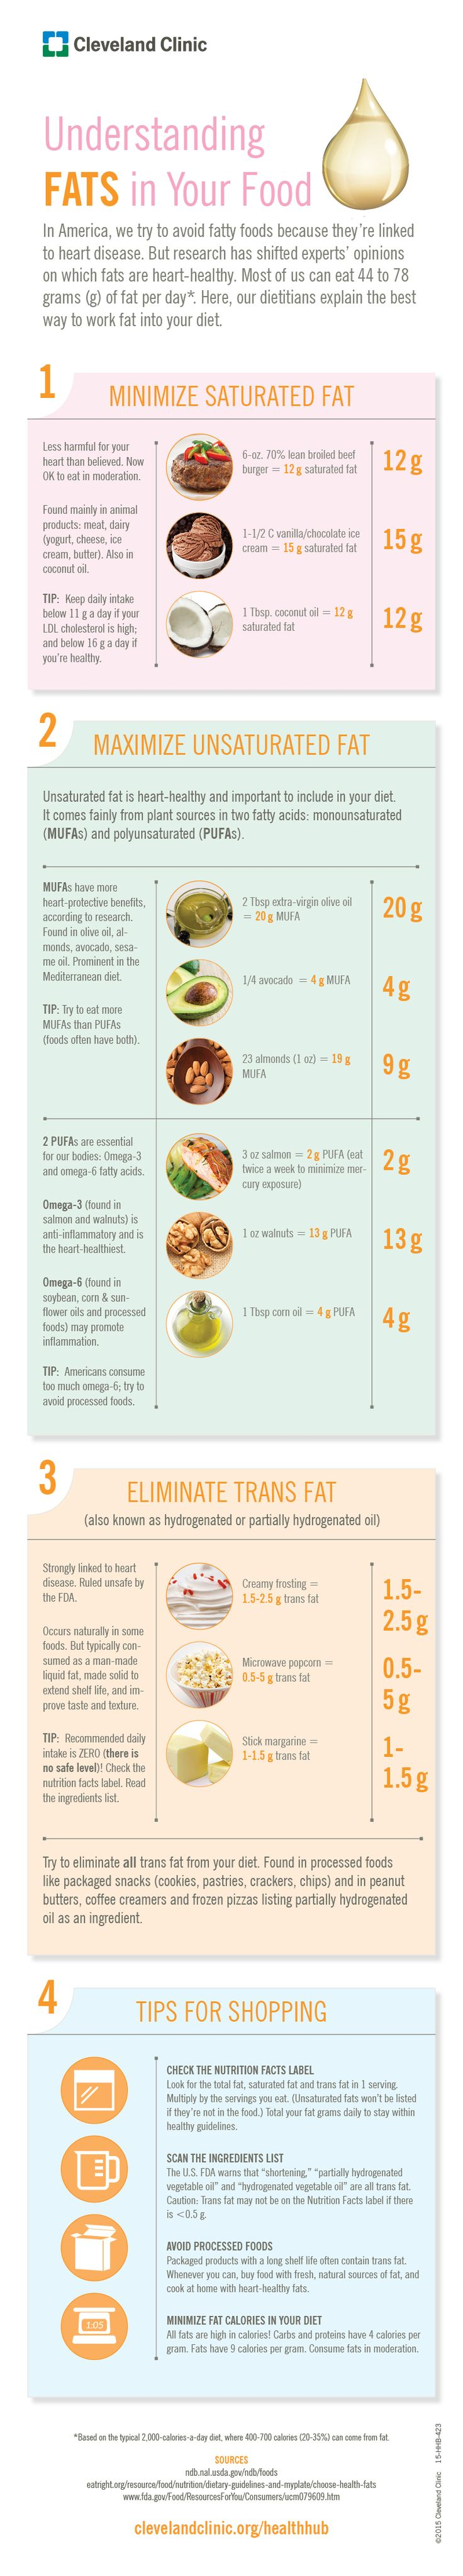 Are You Eating Good Fats or Bad Fats? #infographic #transfat